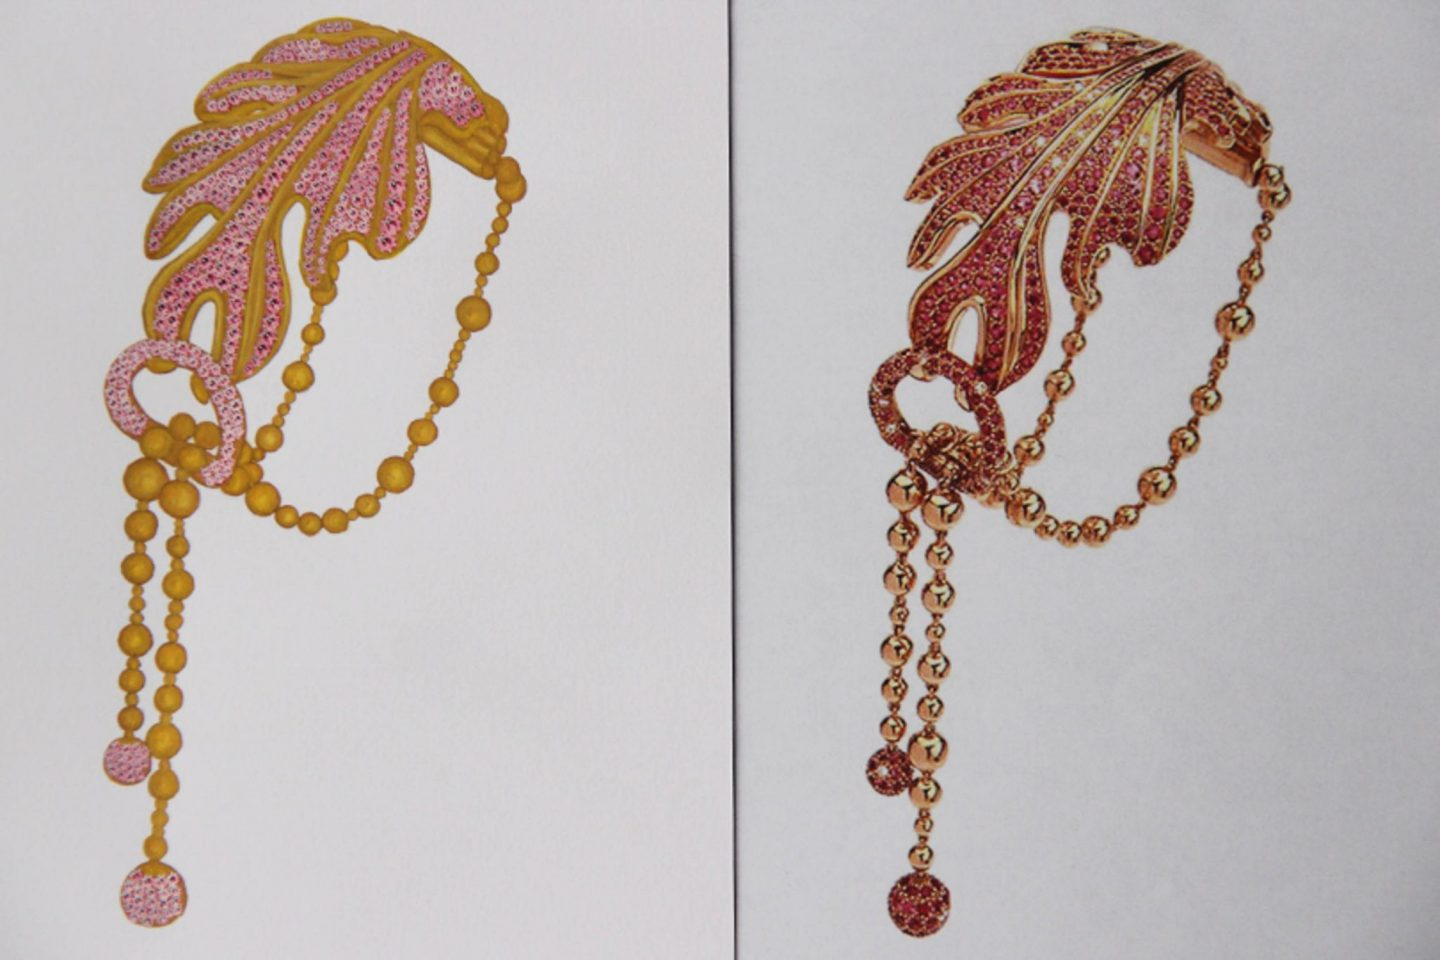 Shine & draw Jewelry drawing reproduction ruby leaf bracelet